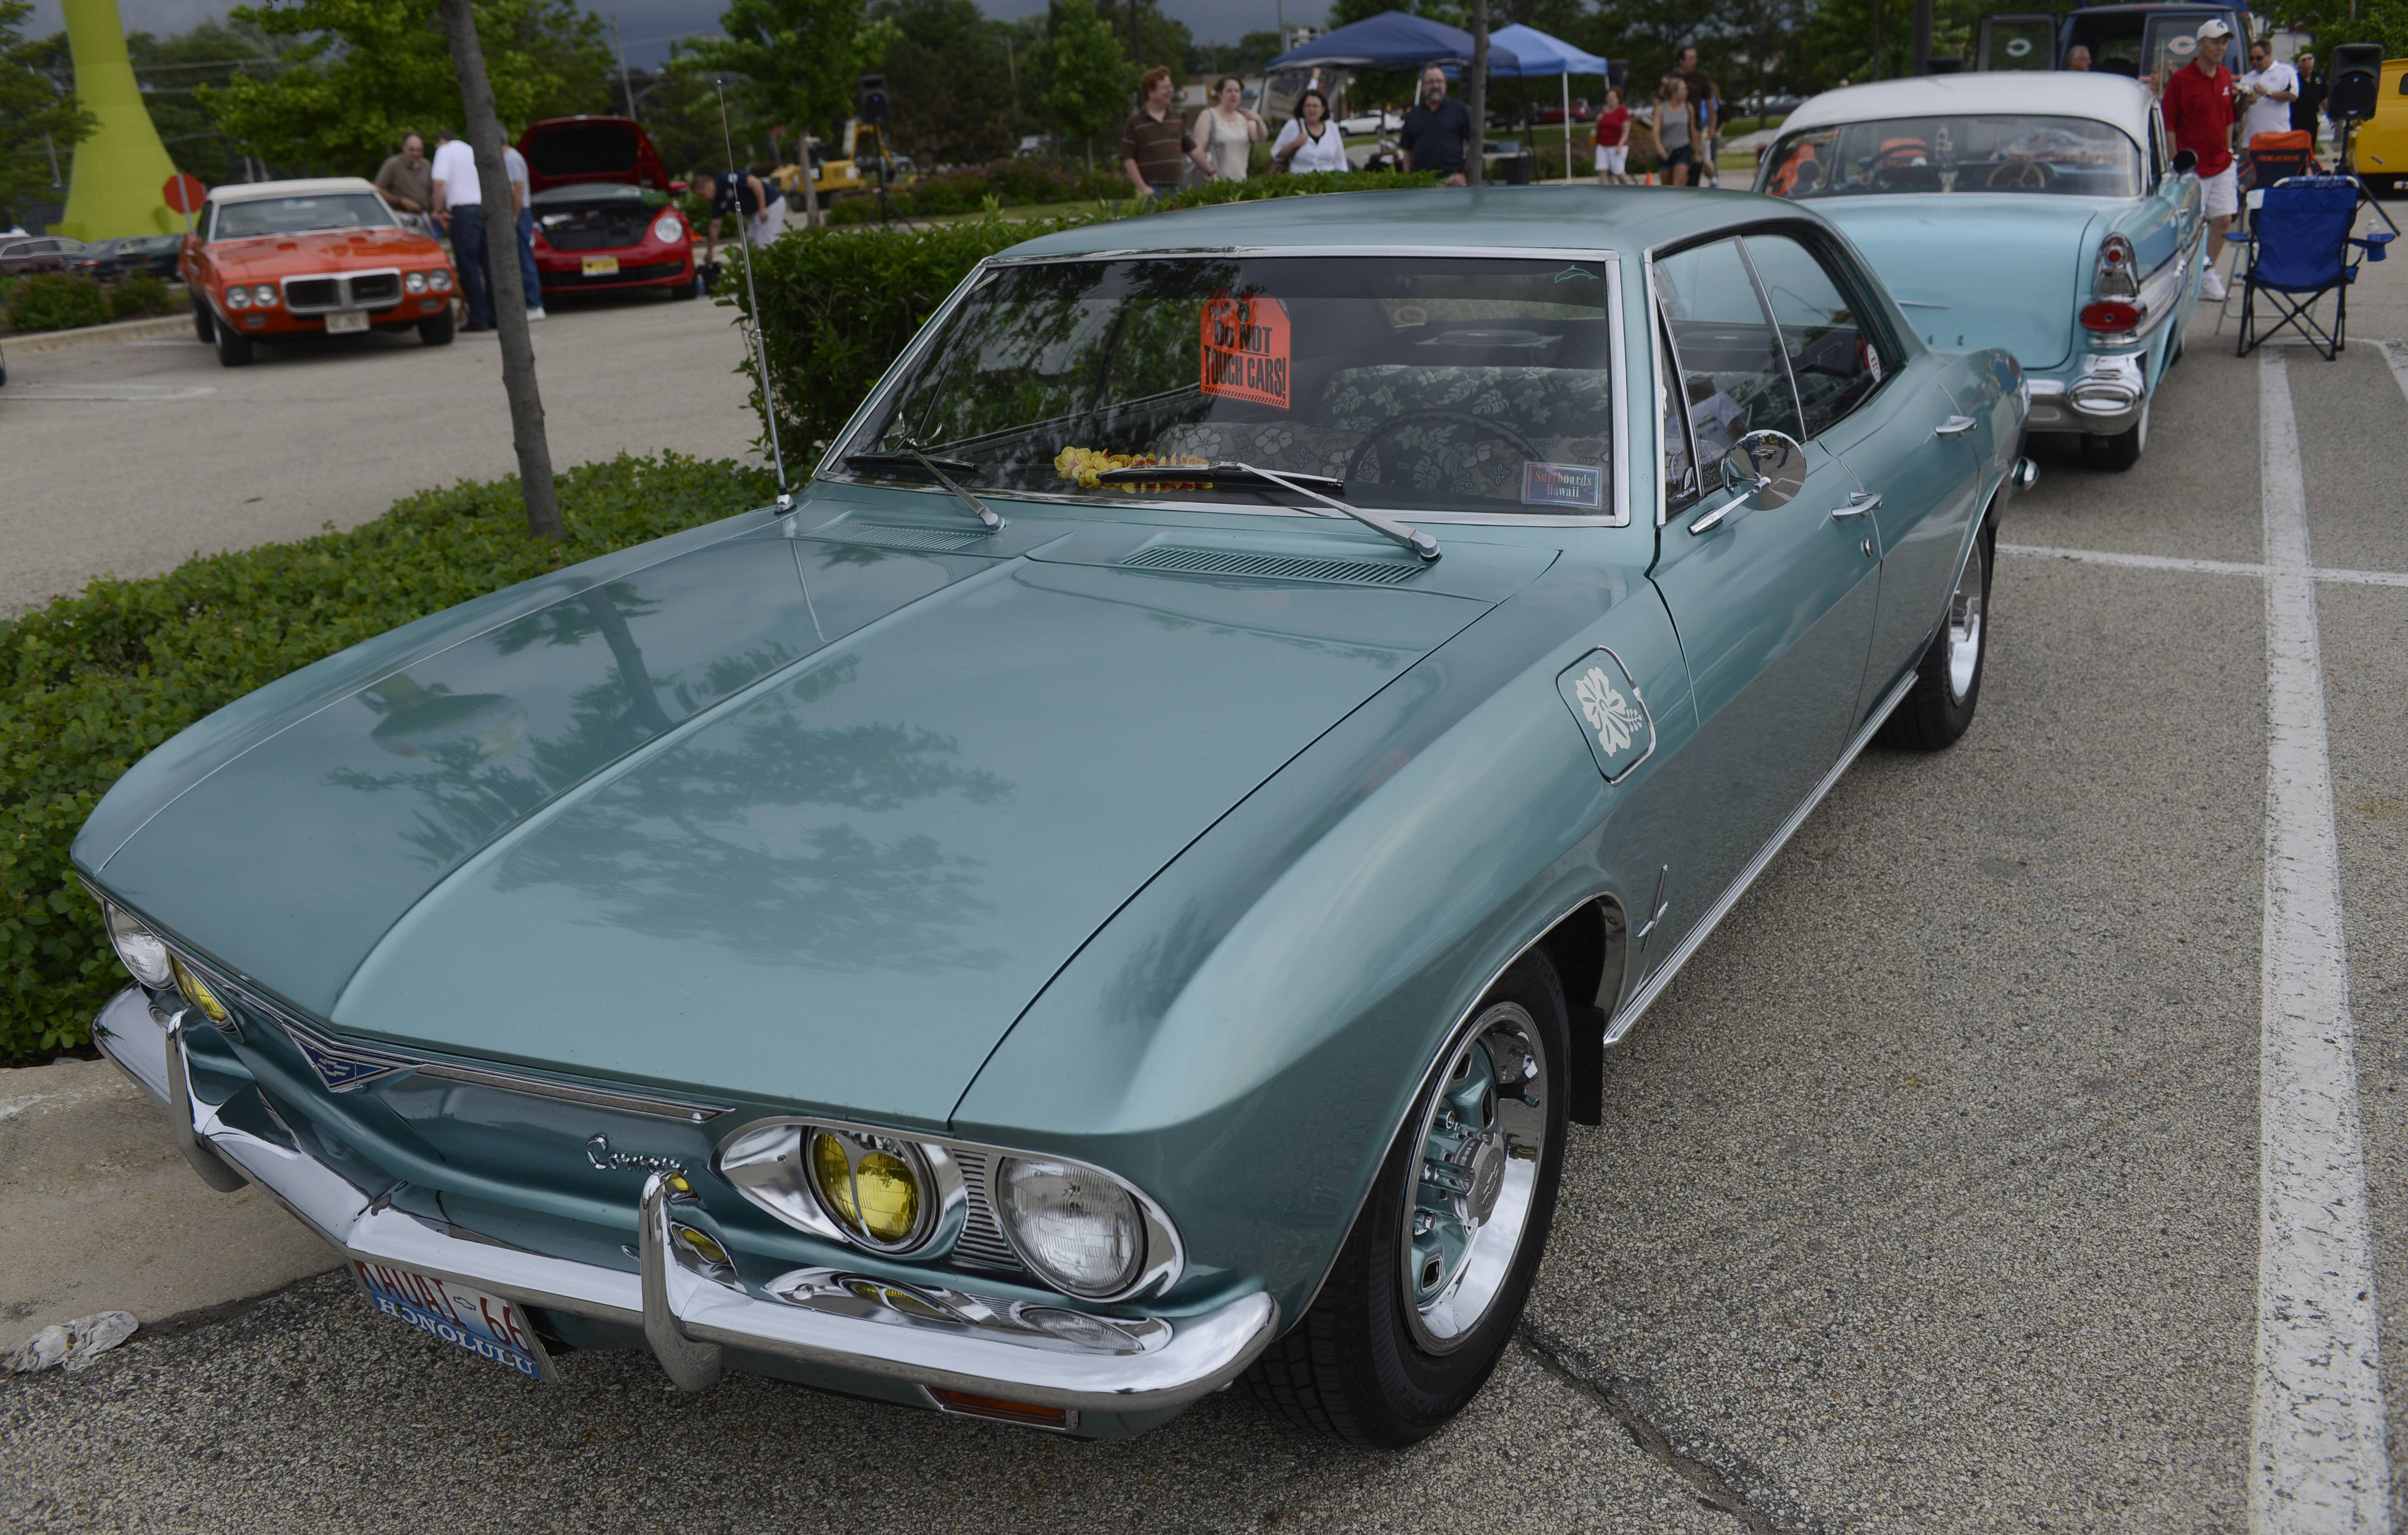 A 1968 Chevy Corvair was among the vehicles at Randhurst Village first cruise night in Mount Prospect.